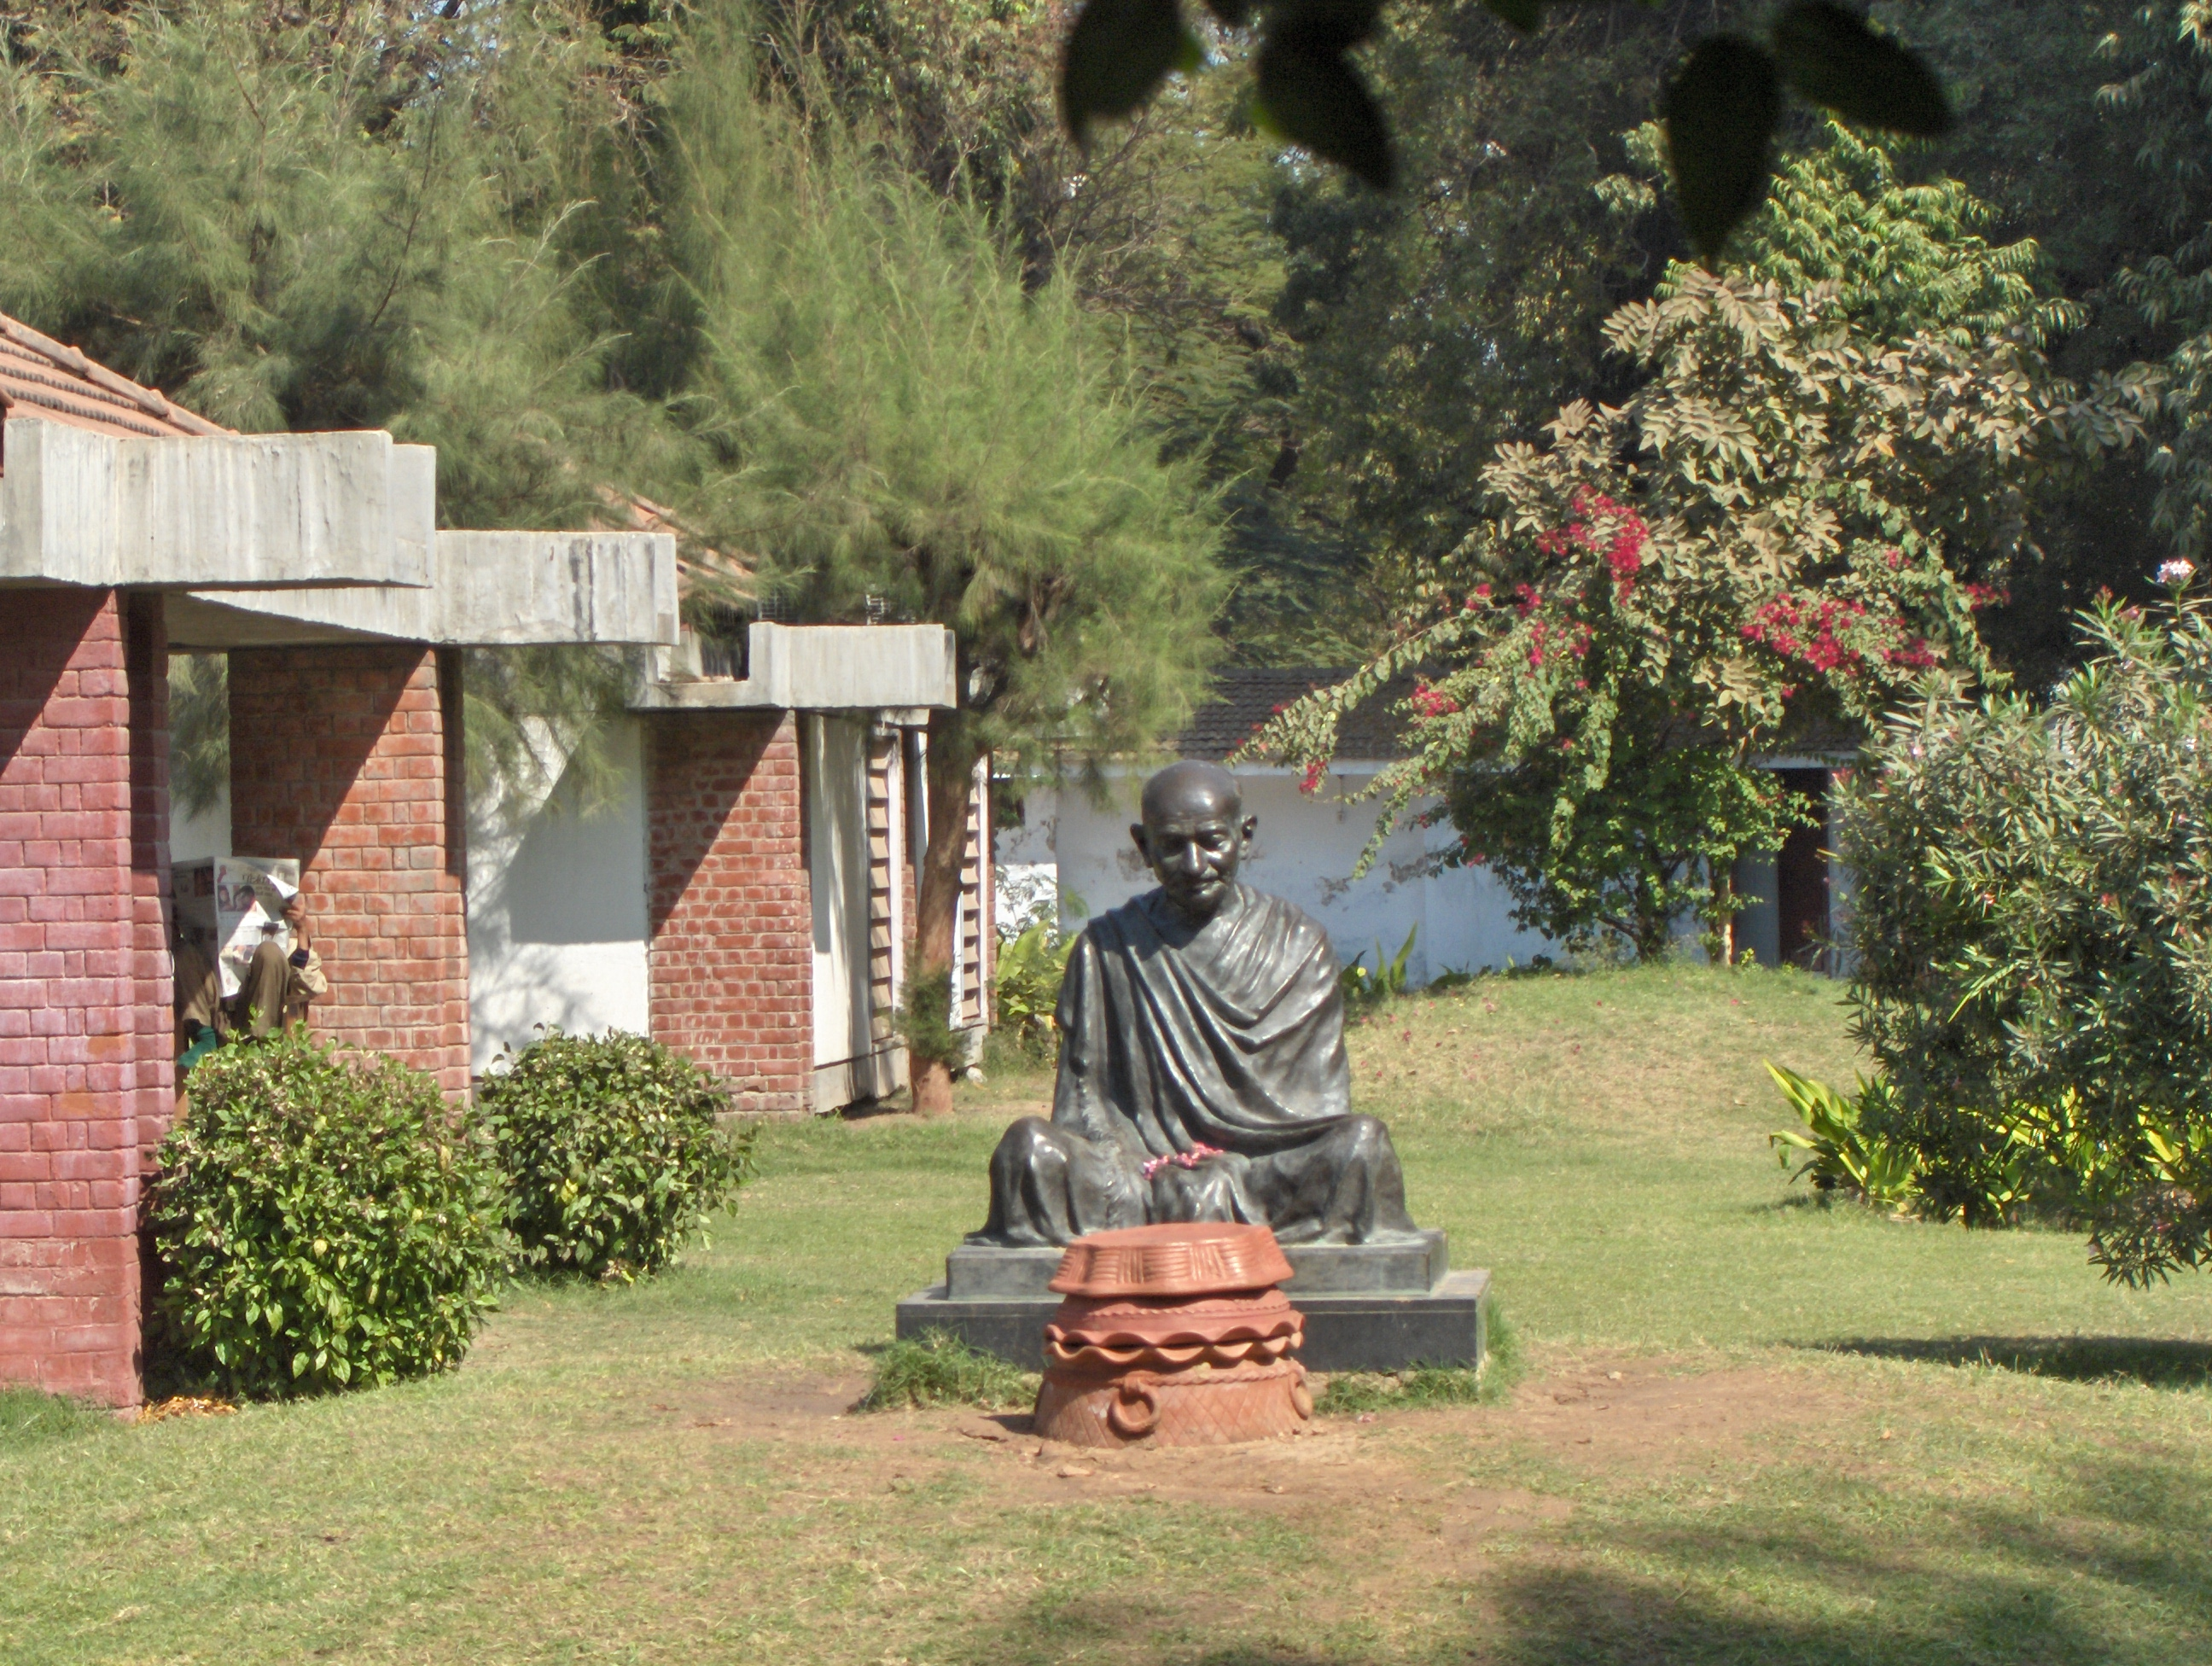 File:Sabarmati-Ashram-13.jpg - Wikipedia, the free encyclopedia